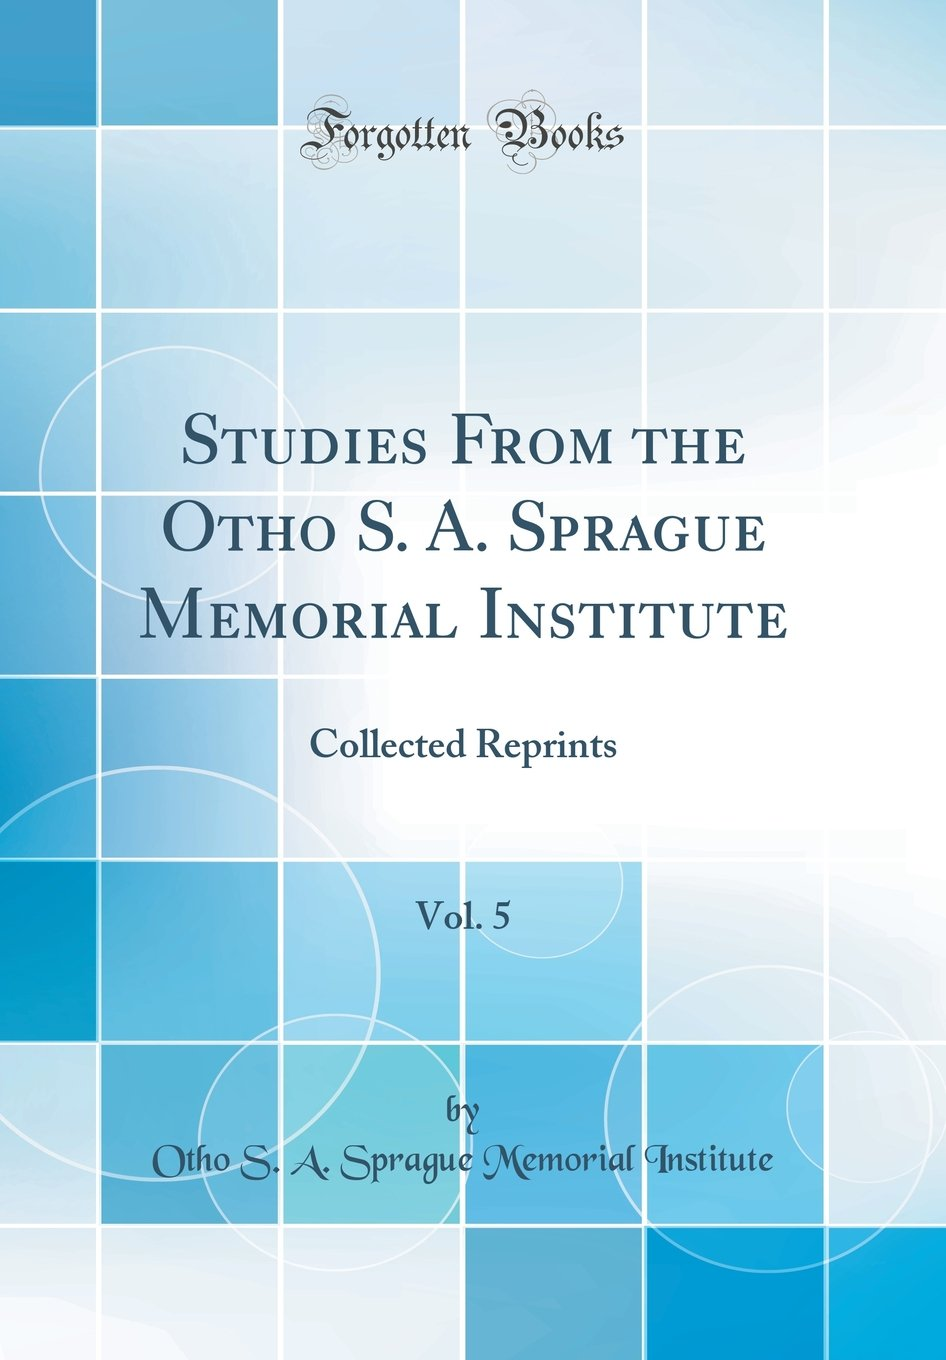 Download Studies From the Otho S. A. Sprague Memorial Institute, Vol. 5: Collected Reprints (Classic Reprint) PDF